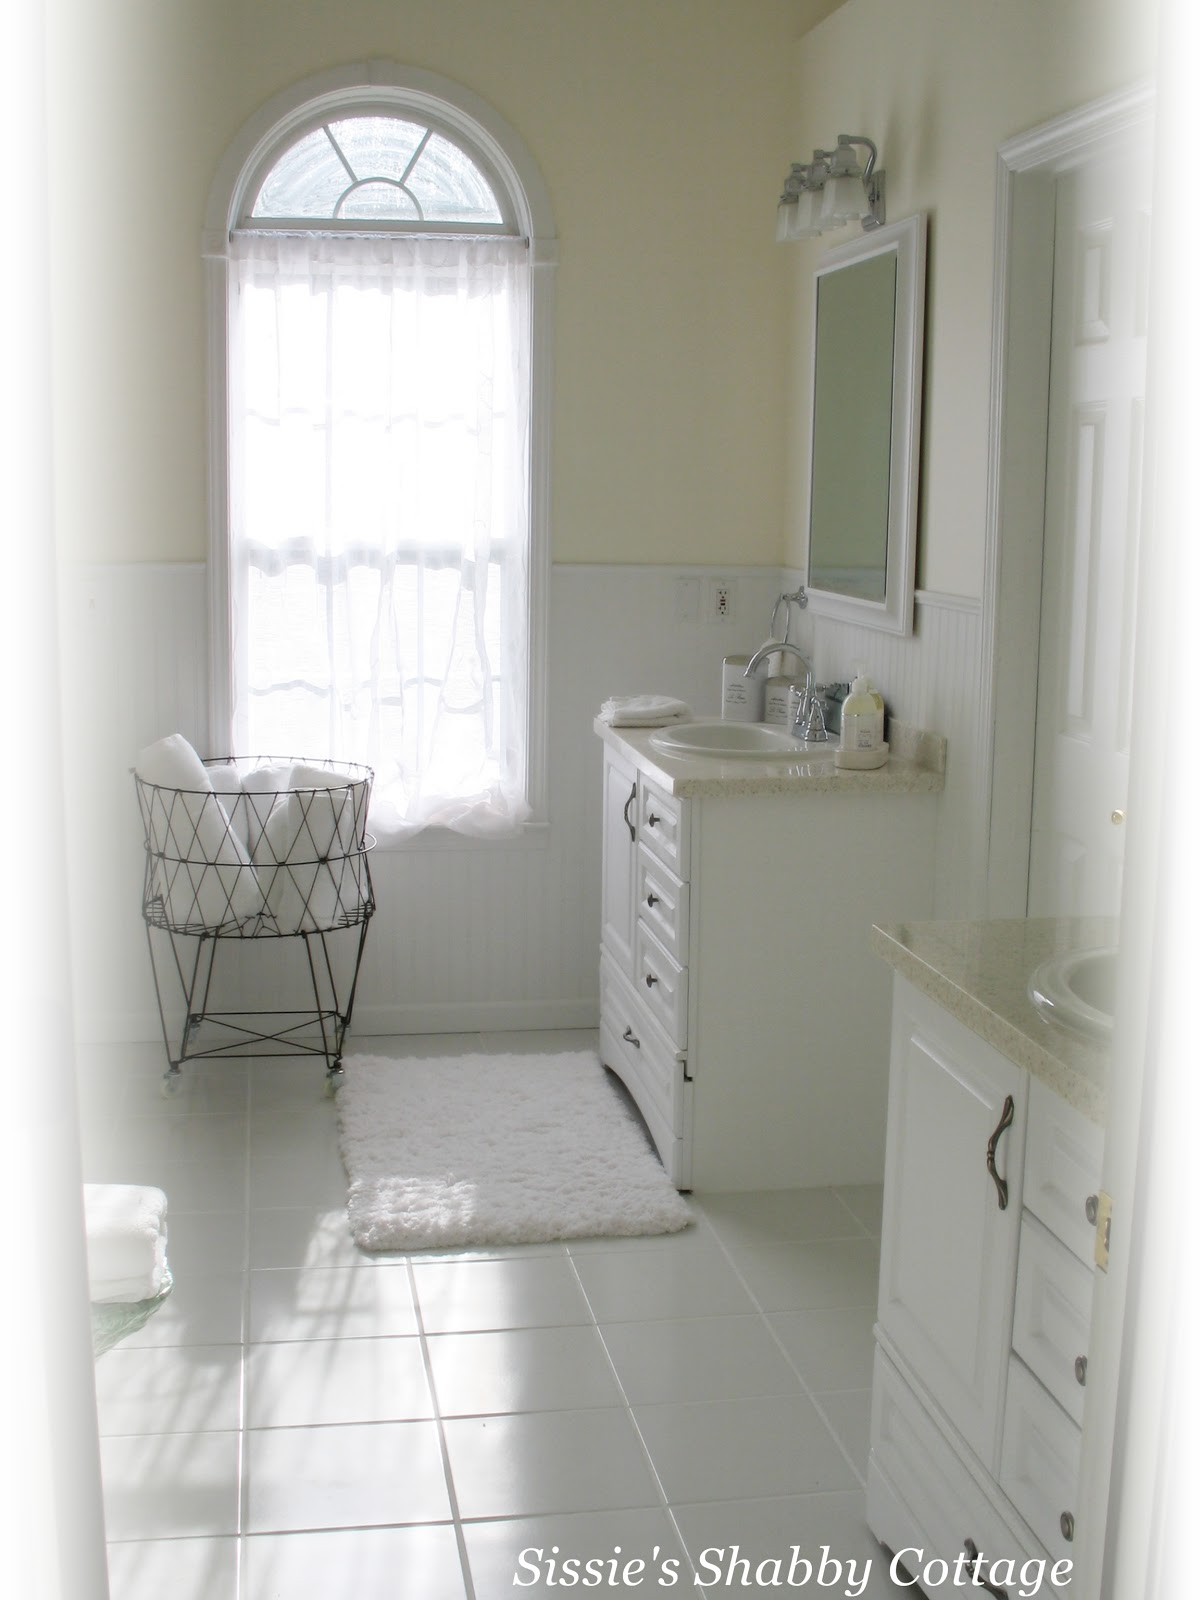 Sissie 39 s shabby cottage bathroom remodel before and after for Cottage bathroom ideas renovate